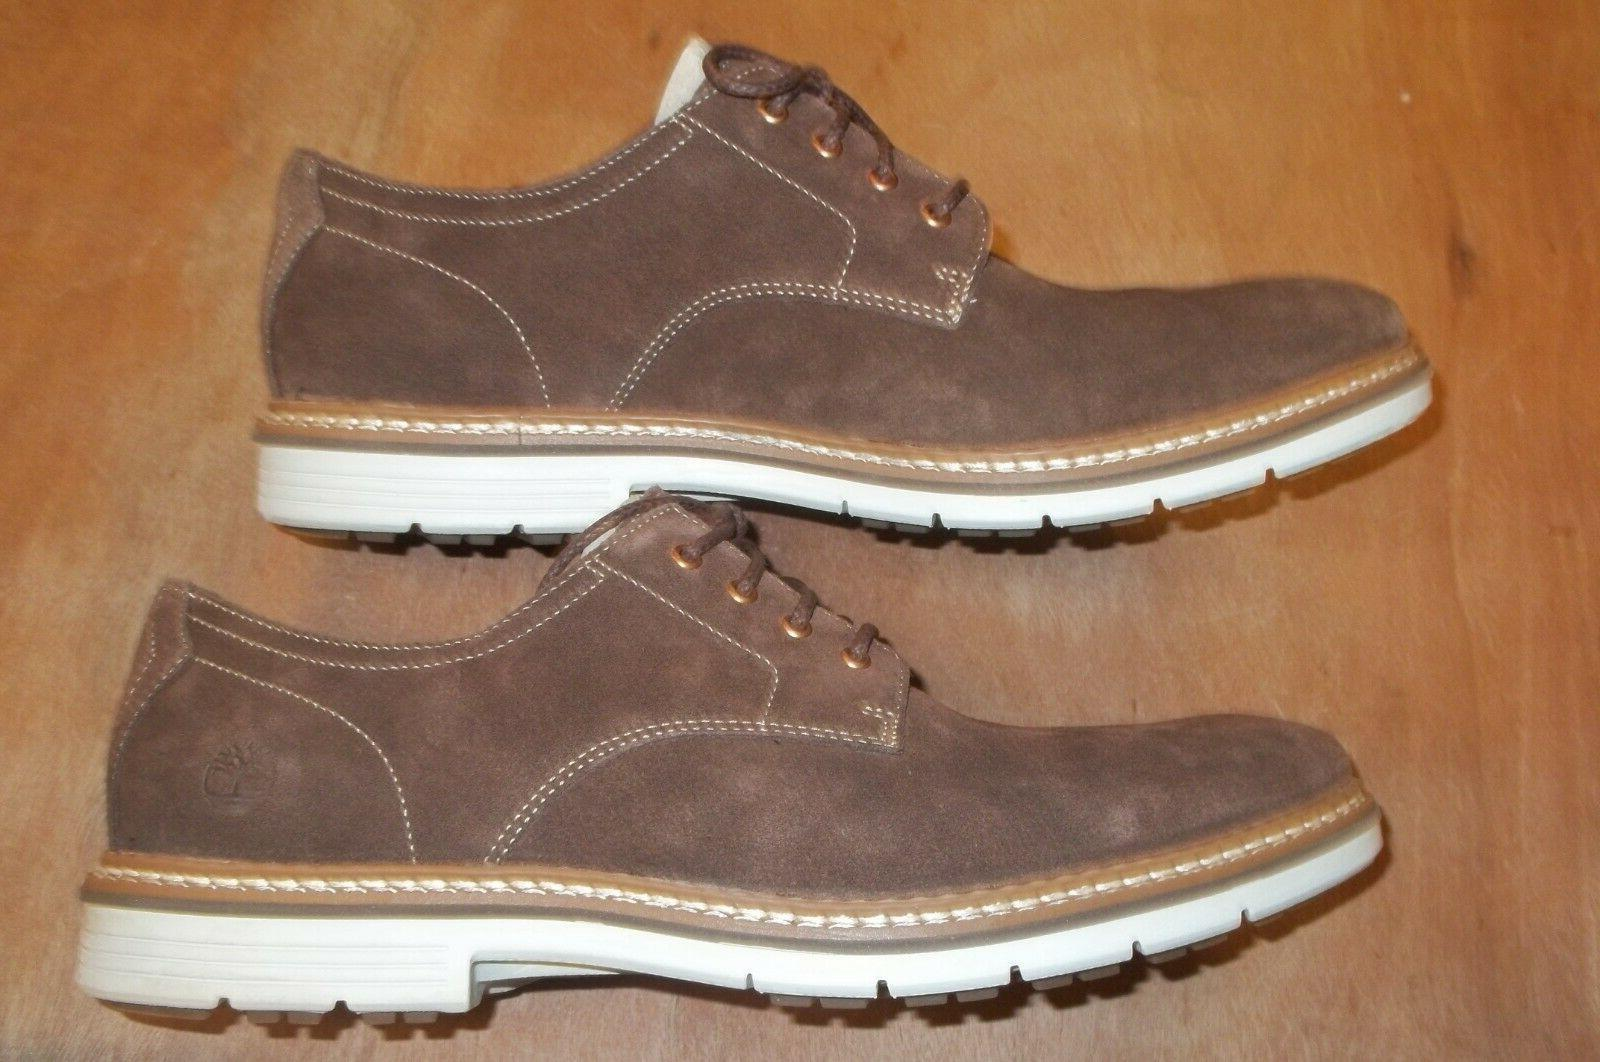 TIMBERLAND Oxford Shoes Suede Leather Men's Size 13.M Brown